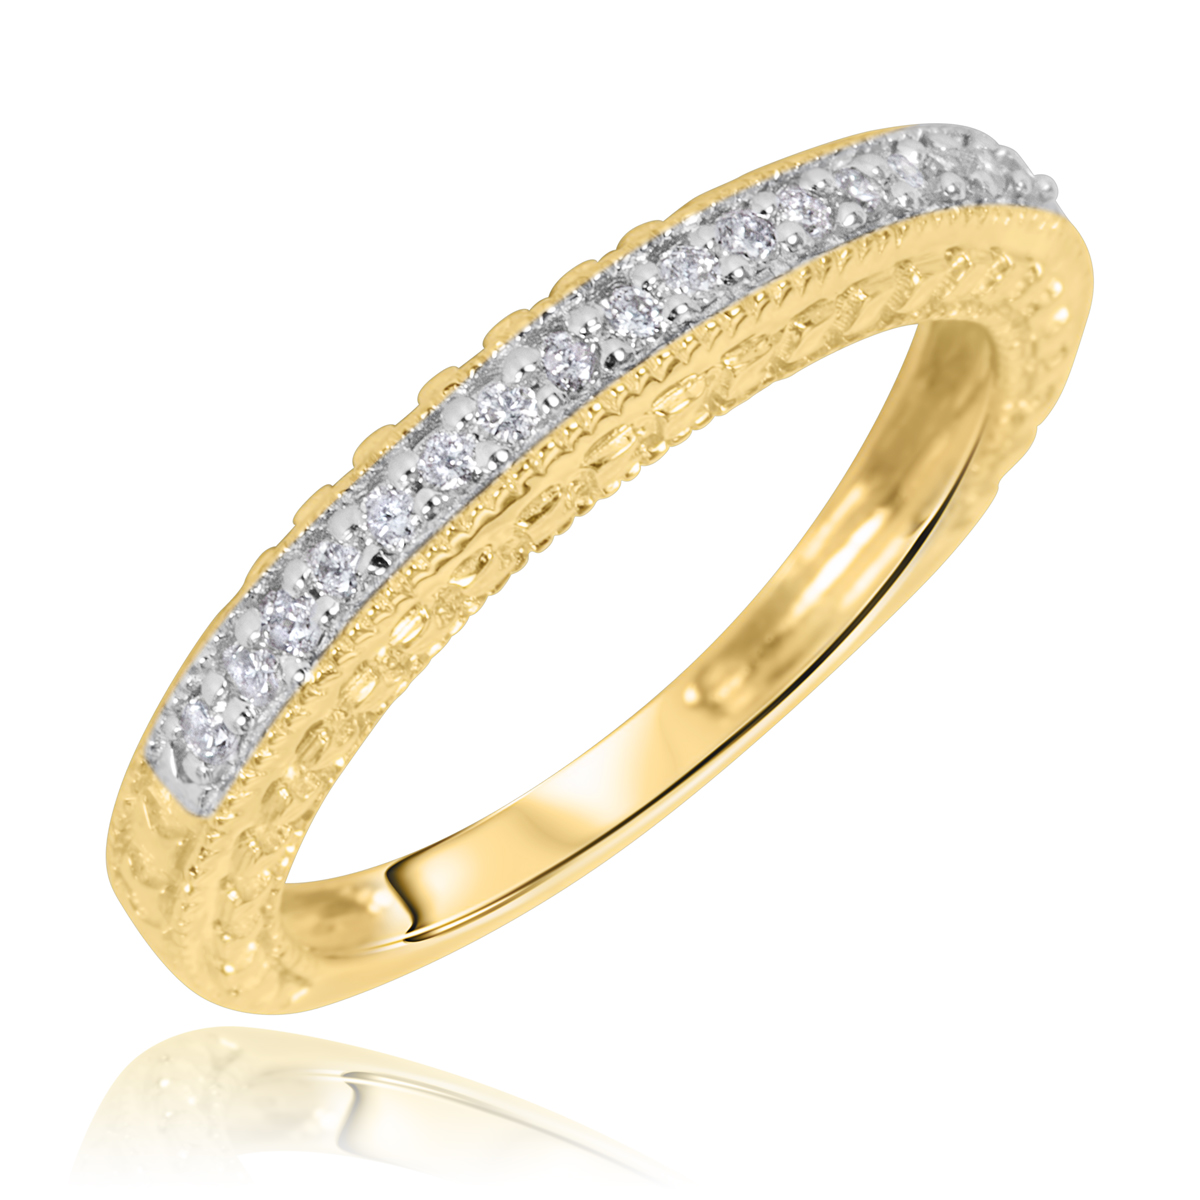 1 carat diamond trio wedding ring set 14k yellow gold my With 14k yellow gold wedding ring